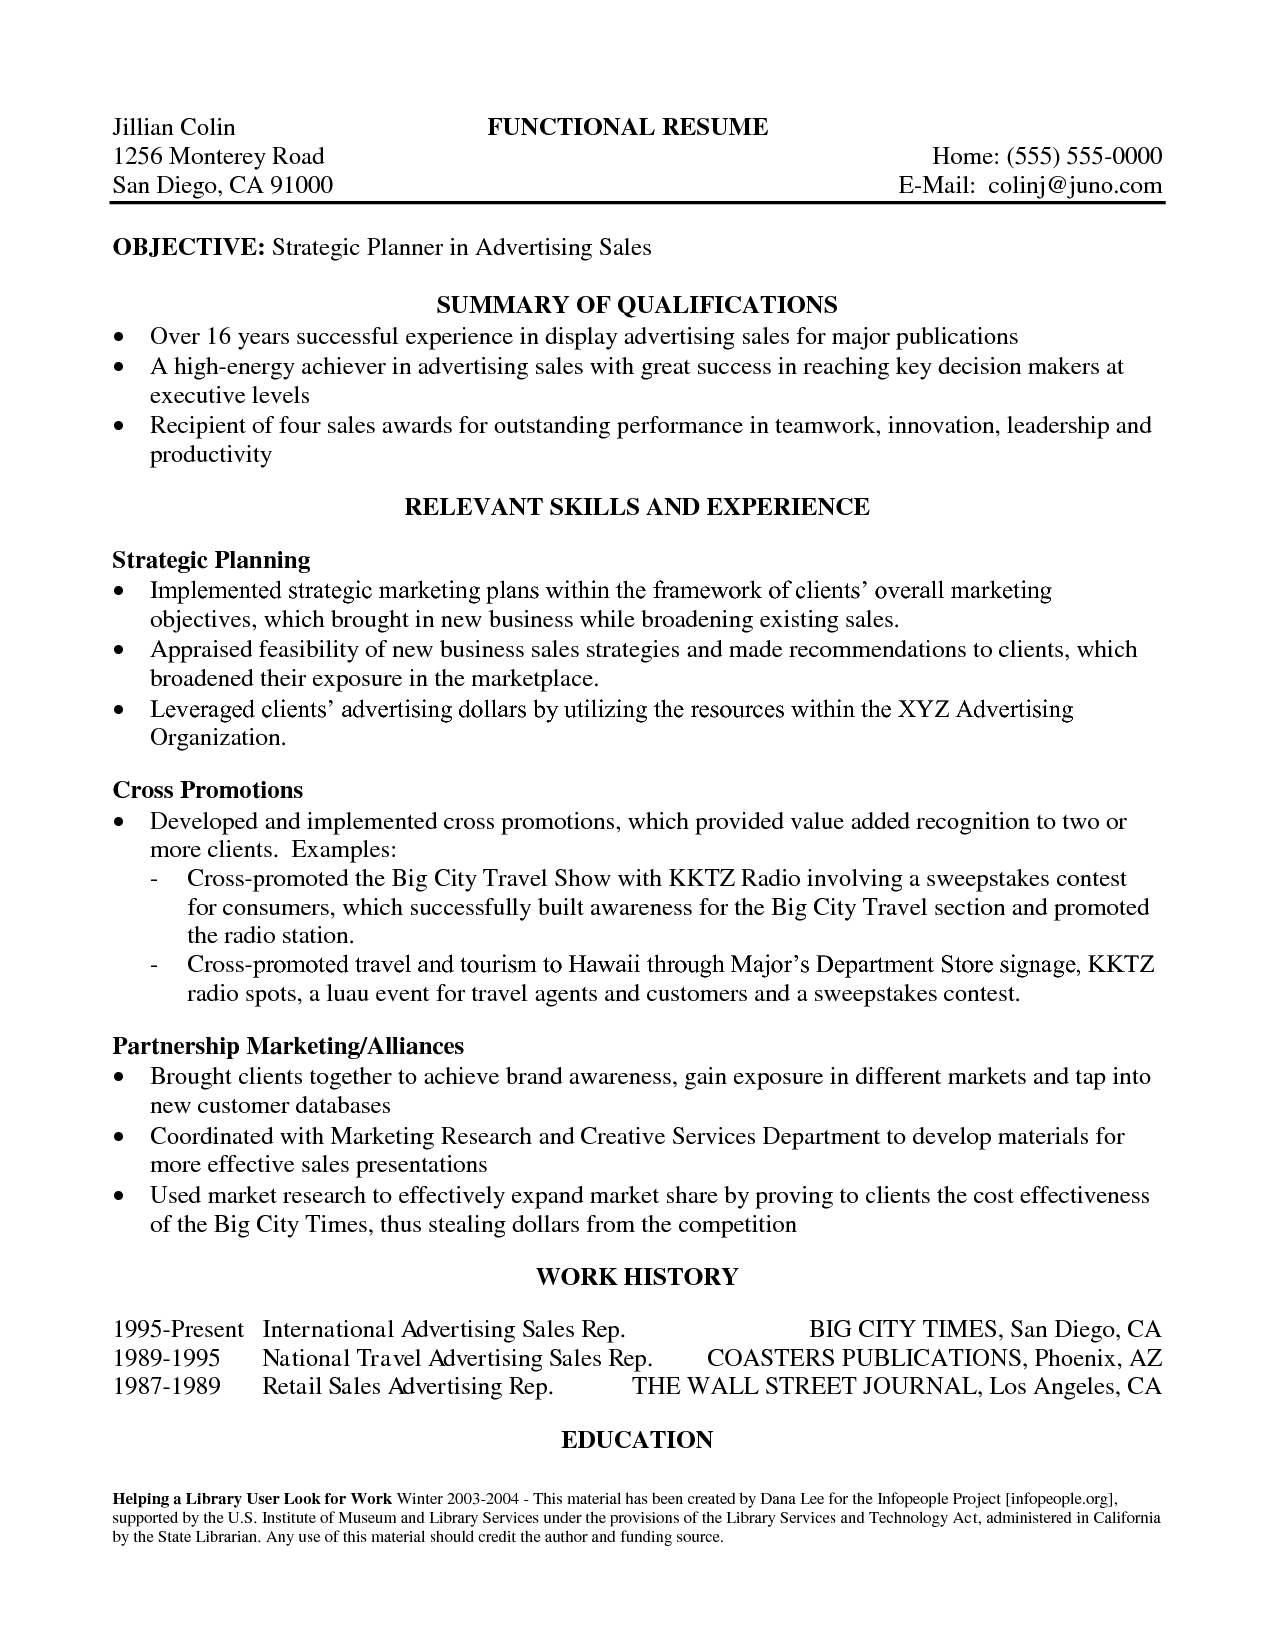 Summary Sample For Resume Endearing Resume Examples Summary  Resume Examples  Pinterest  Resume Examples